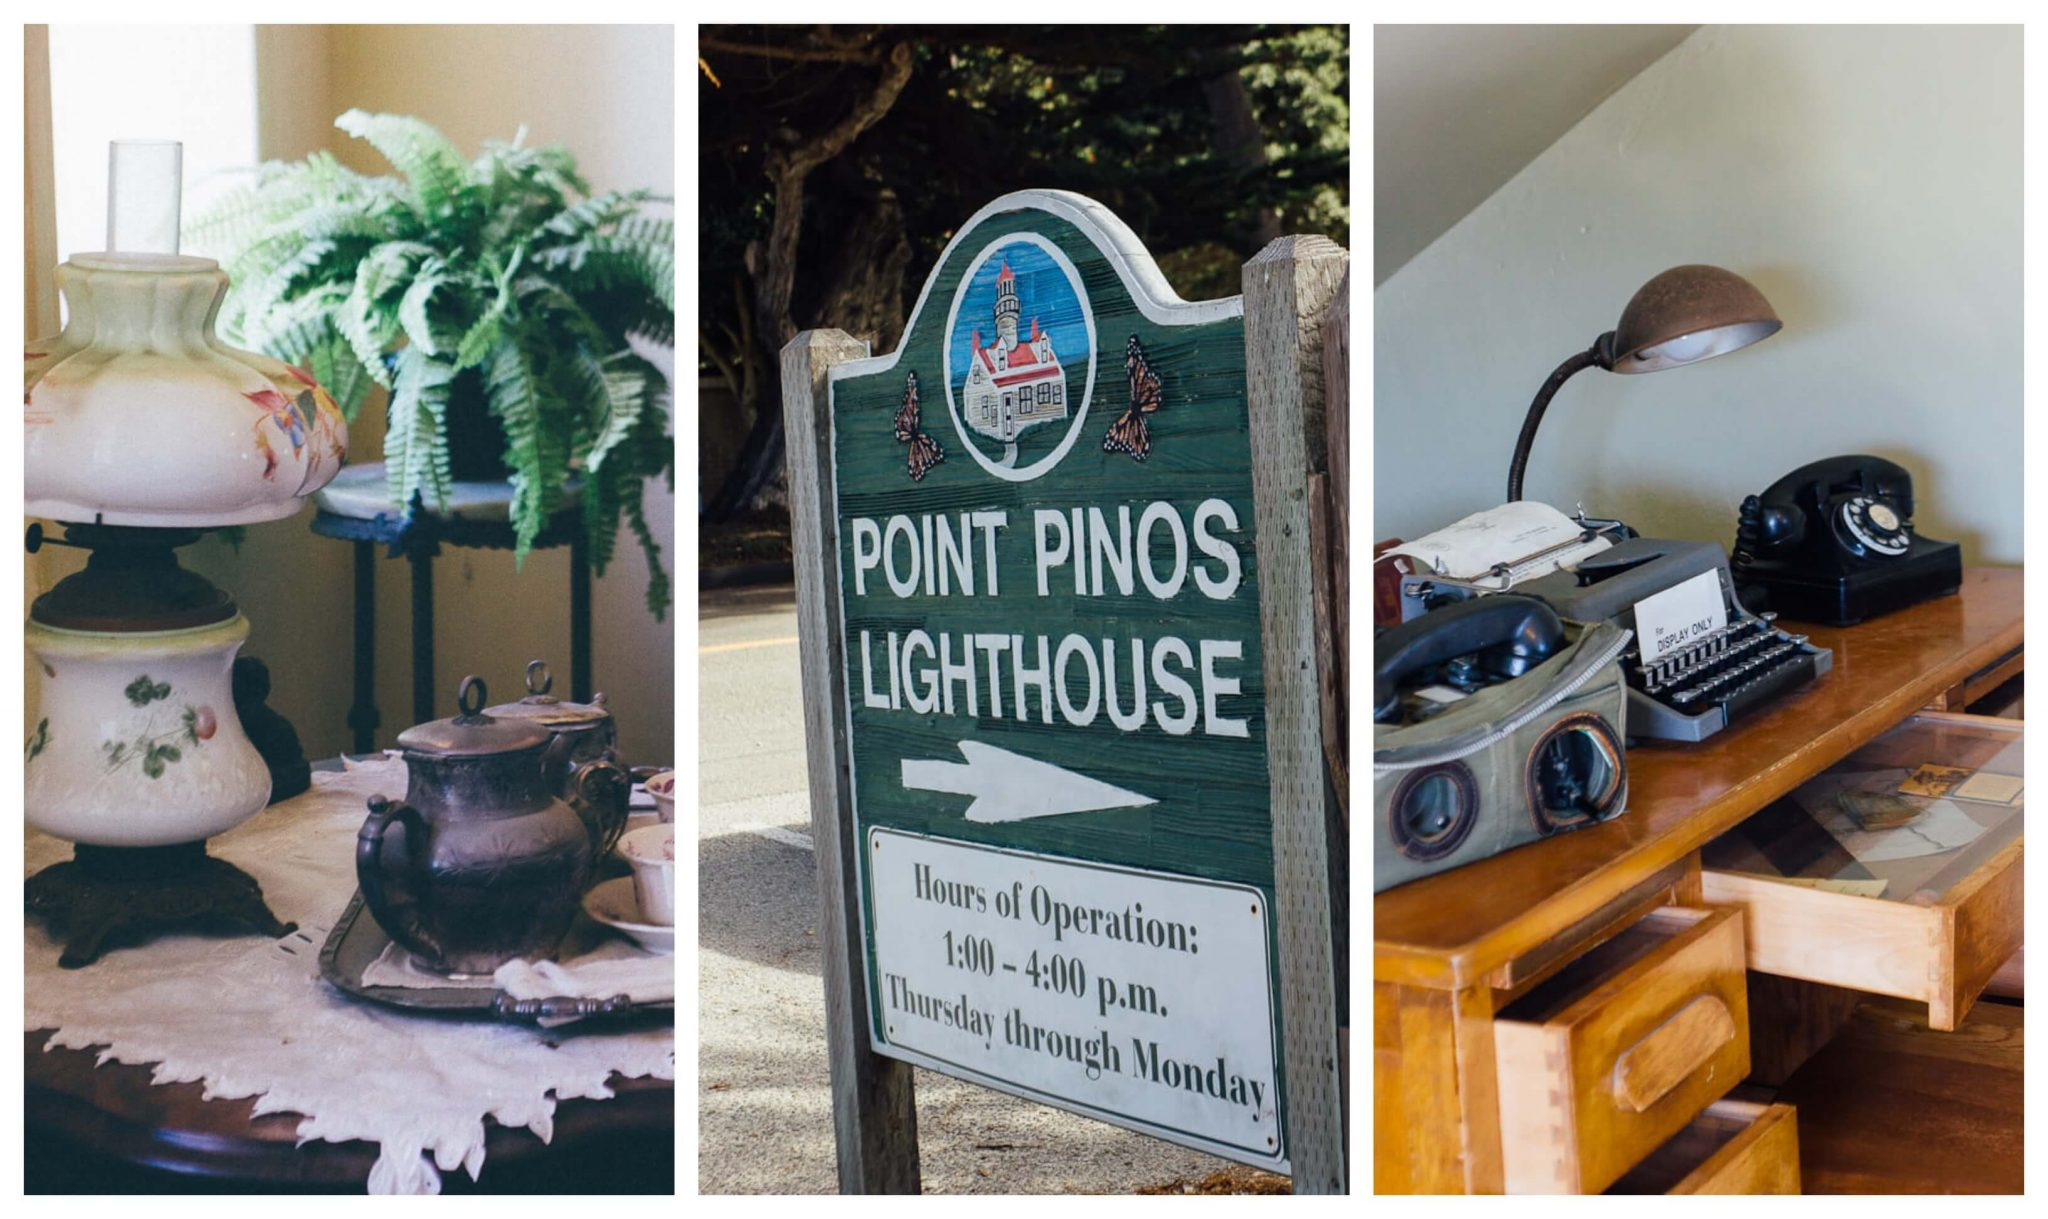 Point Pinos Lighthouse museum